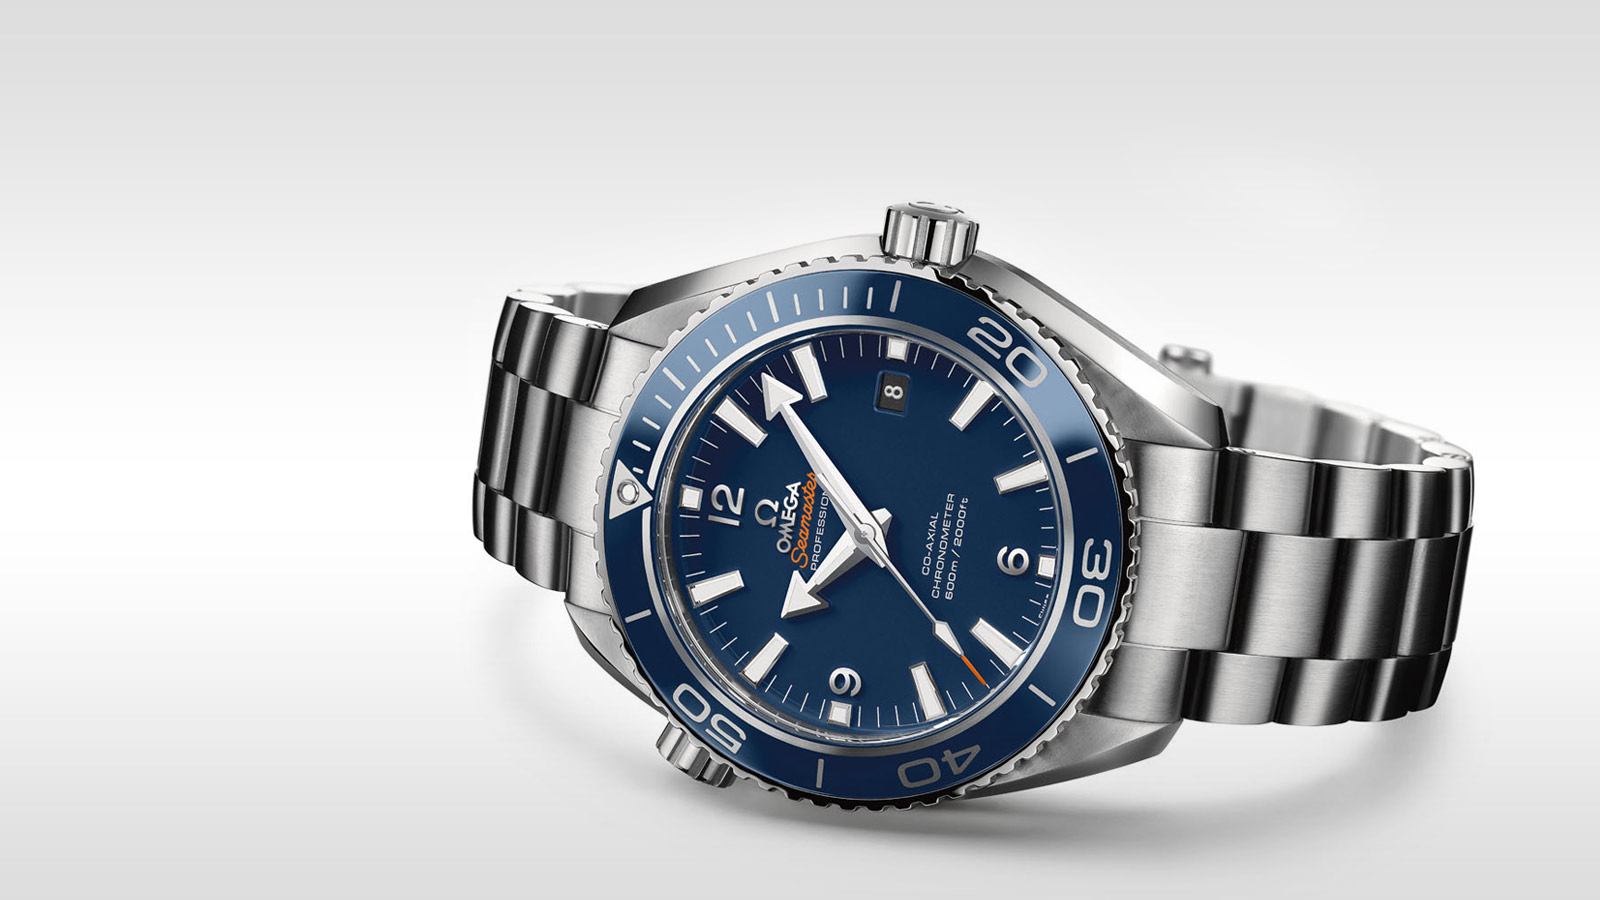 Seamaster Planet Ocean 600M Planet Ocean 600M Omega Co‑Axial 45.5 mm - 232.90.46.21.03.001 - View 1